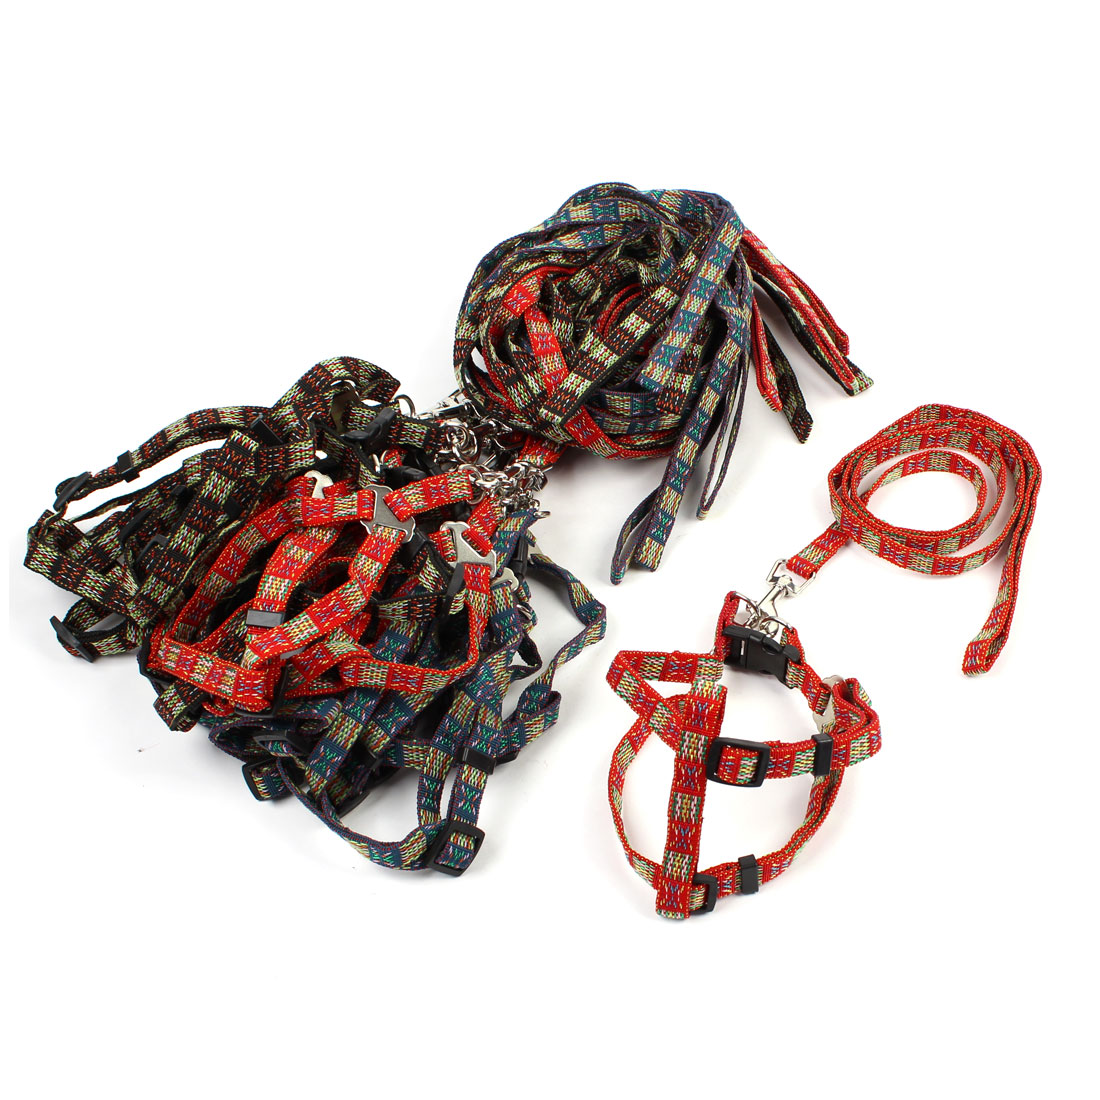 12 Pcs Assorted Color Nylon Strap Adjustable Dog Harness Leash w Metal Hook